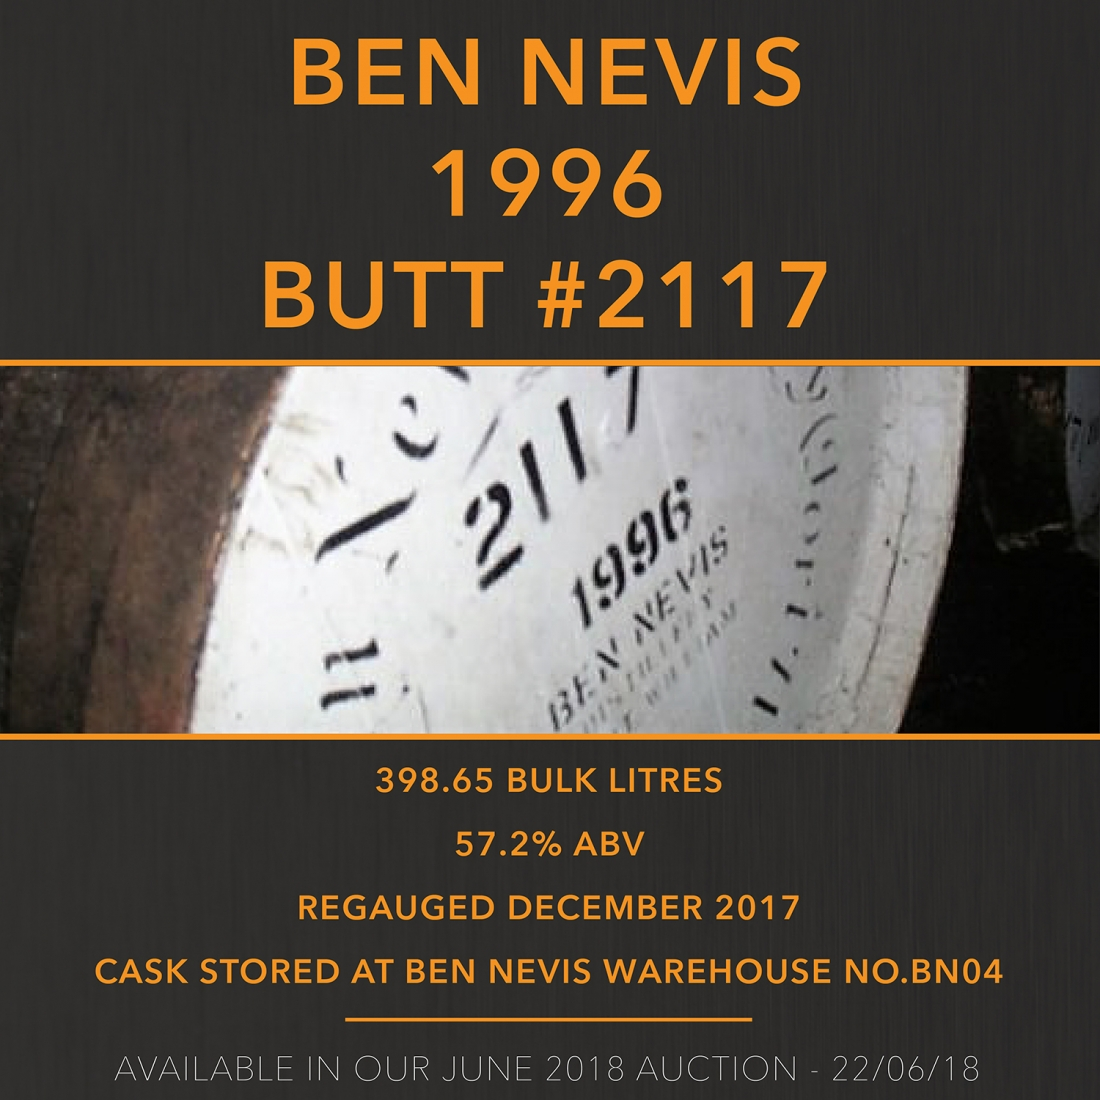 1 Ben Nevis 1996 Guthrie Cask #2117 21 Year Old / Cask in storage at Ben Nevis